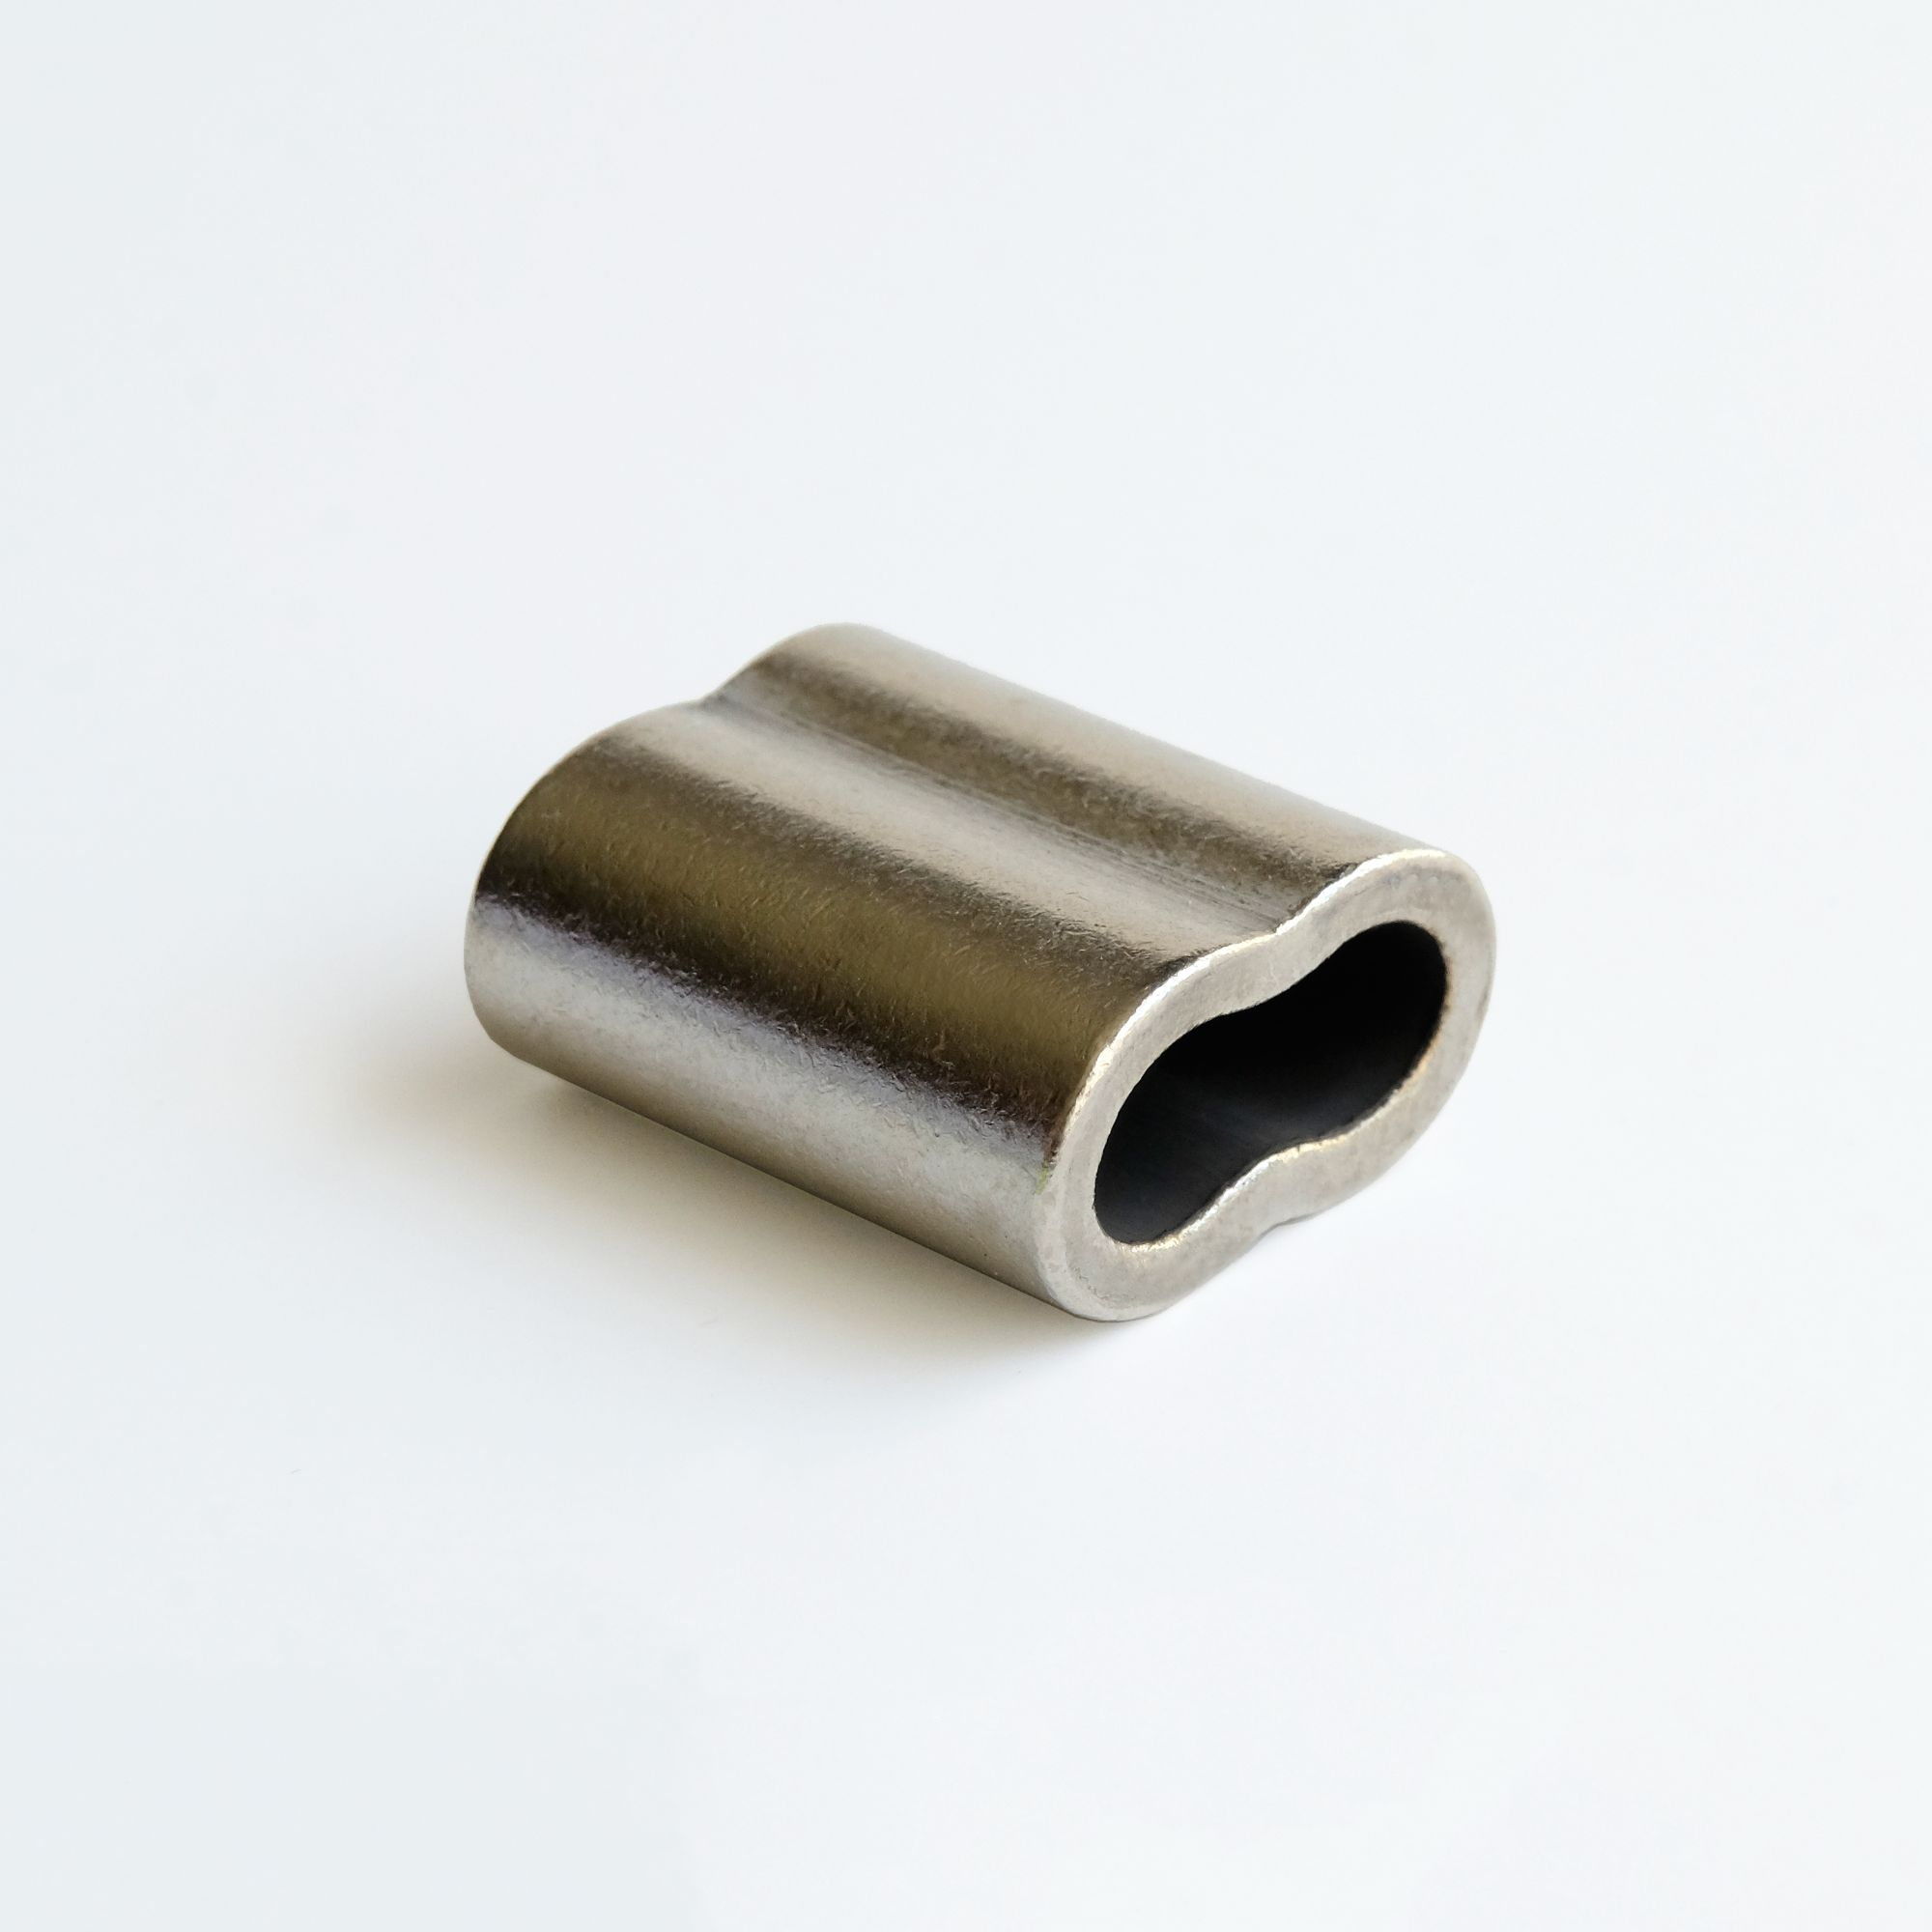 Nickel Plated Copper Crimps available at Diamond Networks in Perth, WA